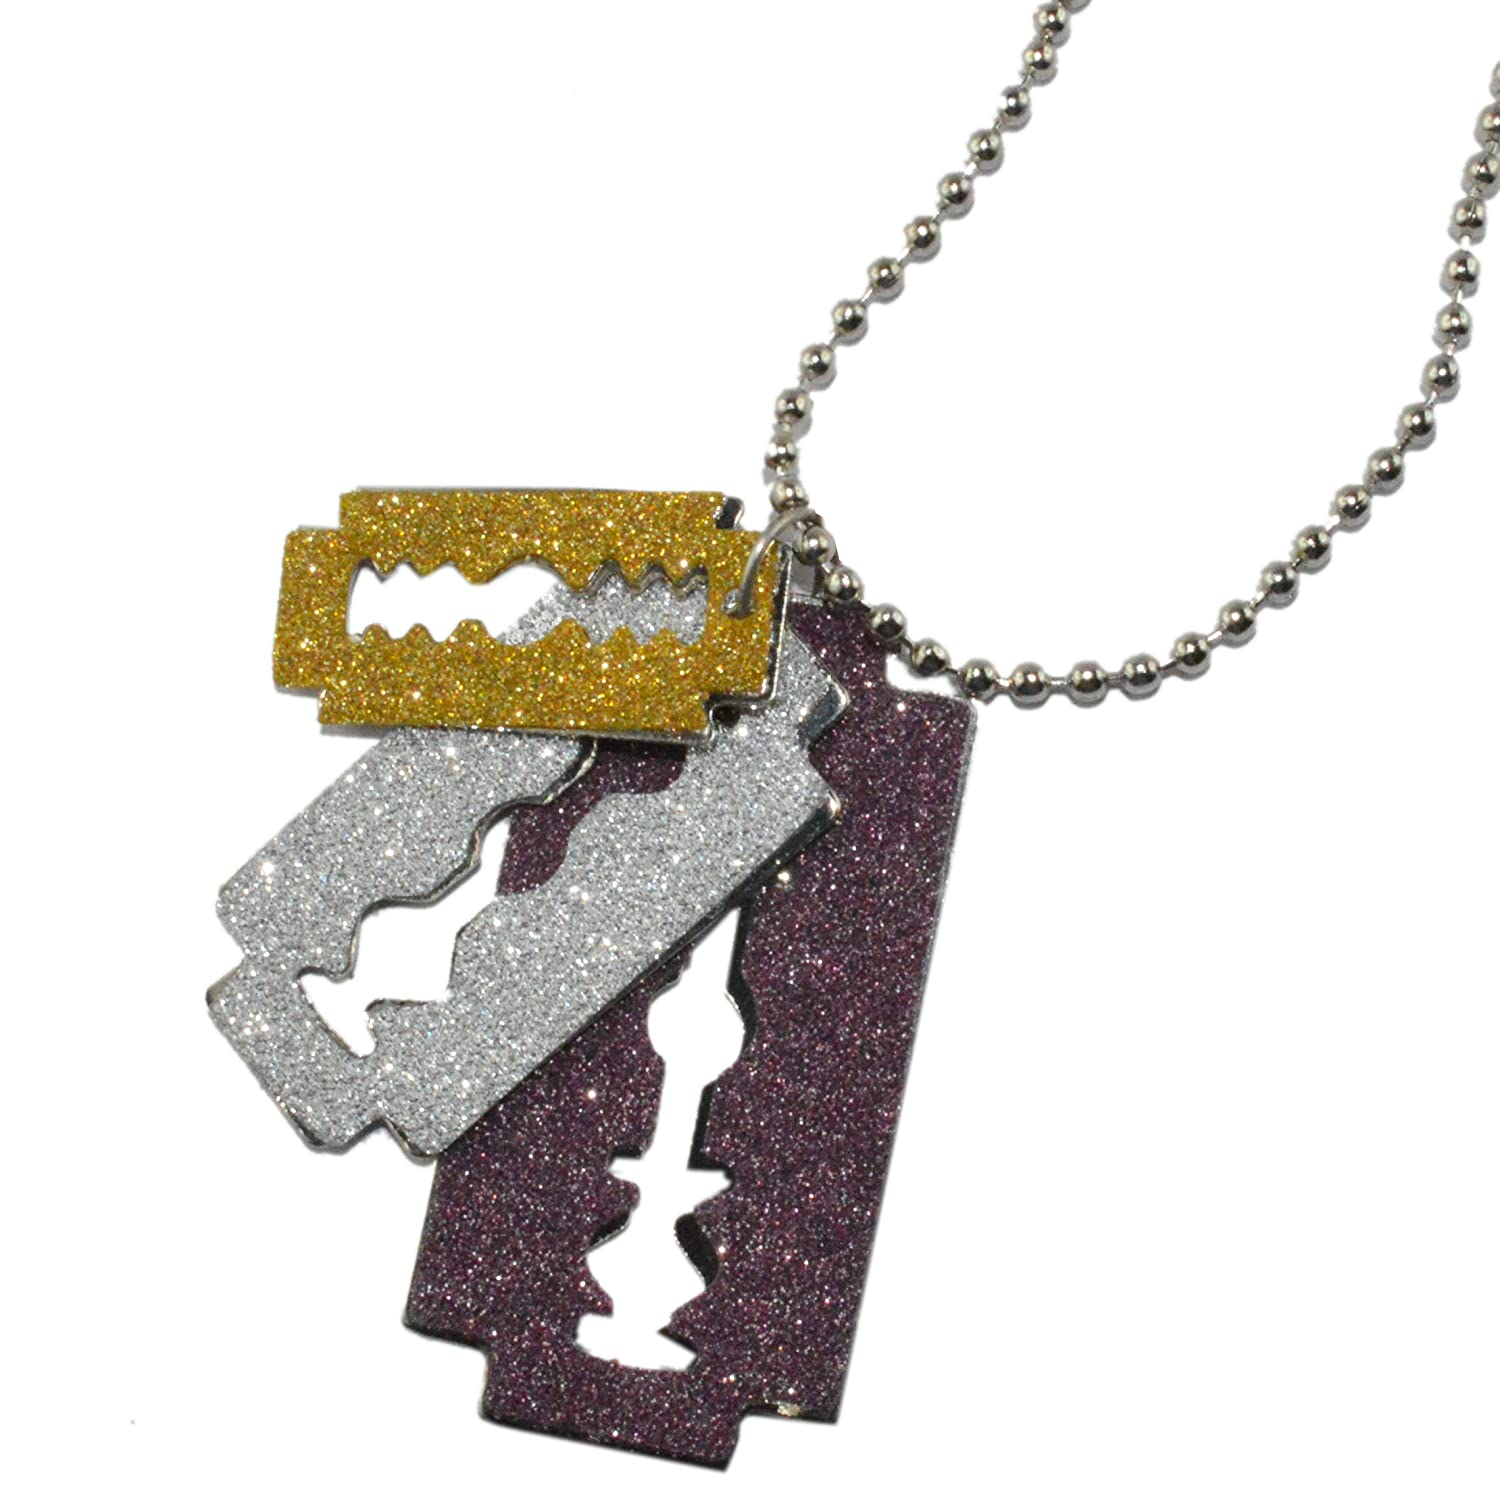 Infinxt stylish blade locket with chain for man boys amazon infinxt stylish glitter blade locket with chain for man boys thecheapjerseys Choice Image